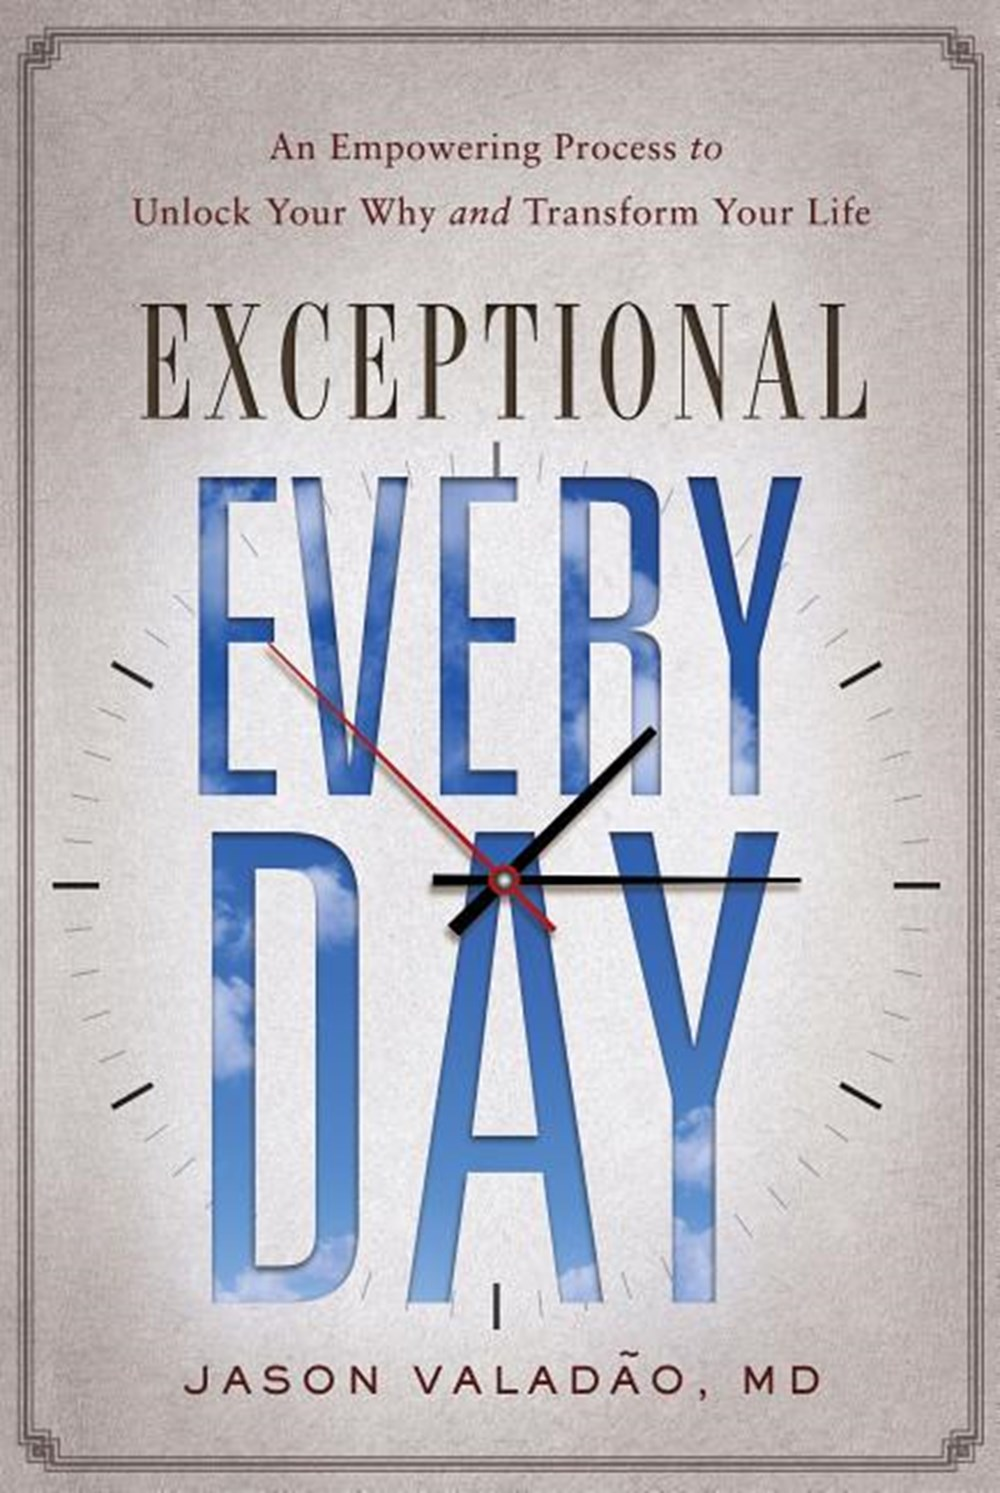 Exceptional Every Day An Empowering Process to Unlock Your Why and Transform Your Life